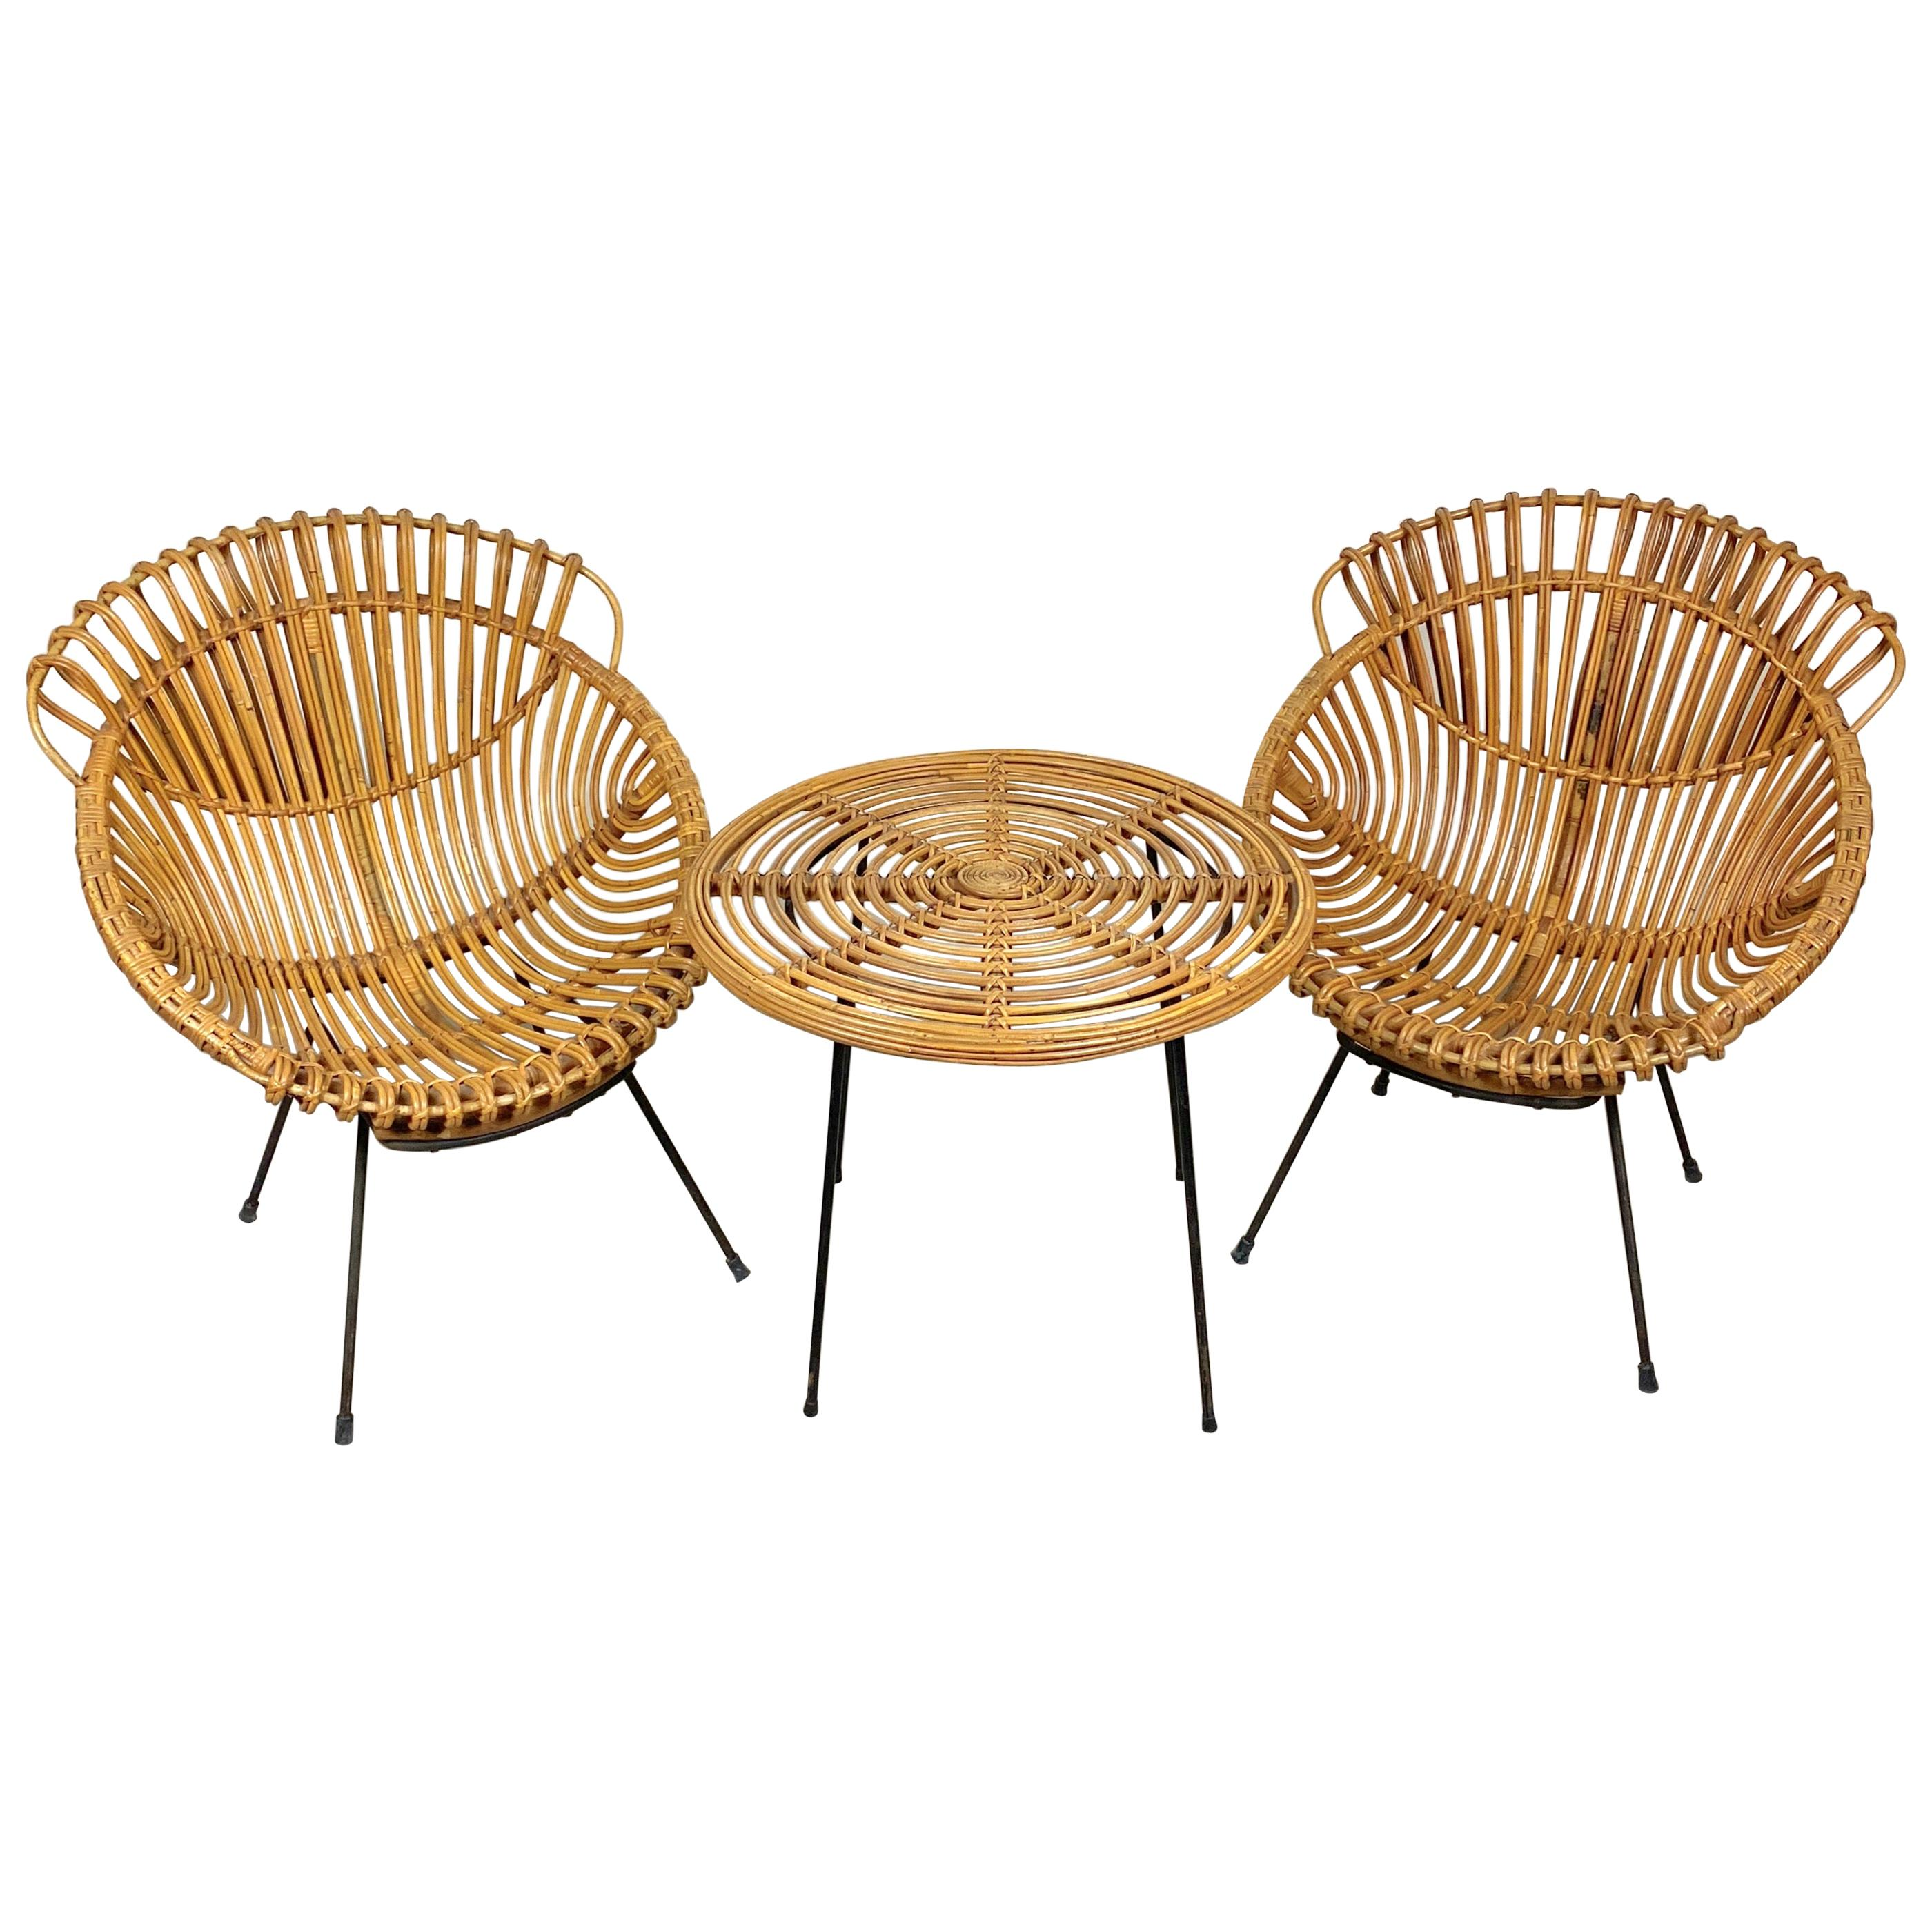 Coffee Table and Two Armchairs in Rattan Wicker and Iron, France, 1960s